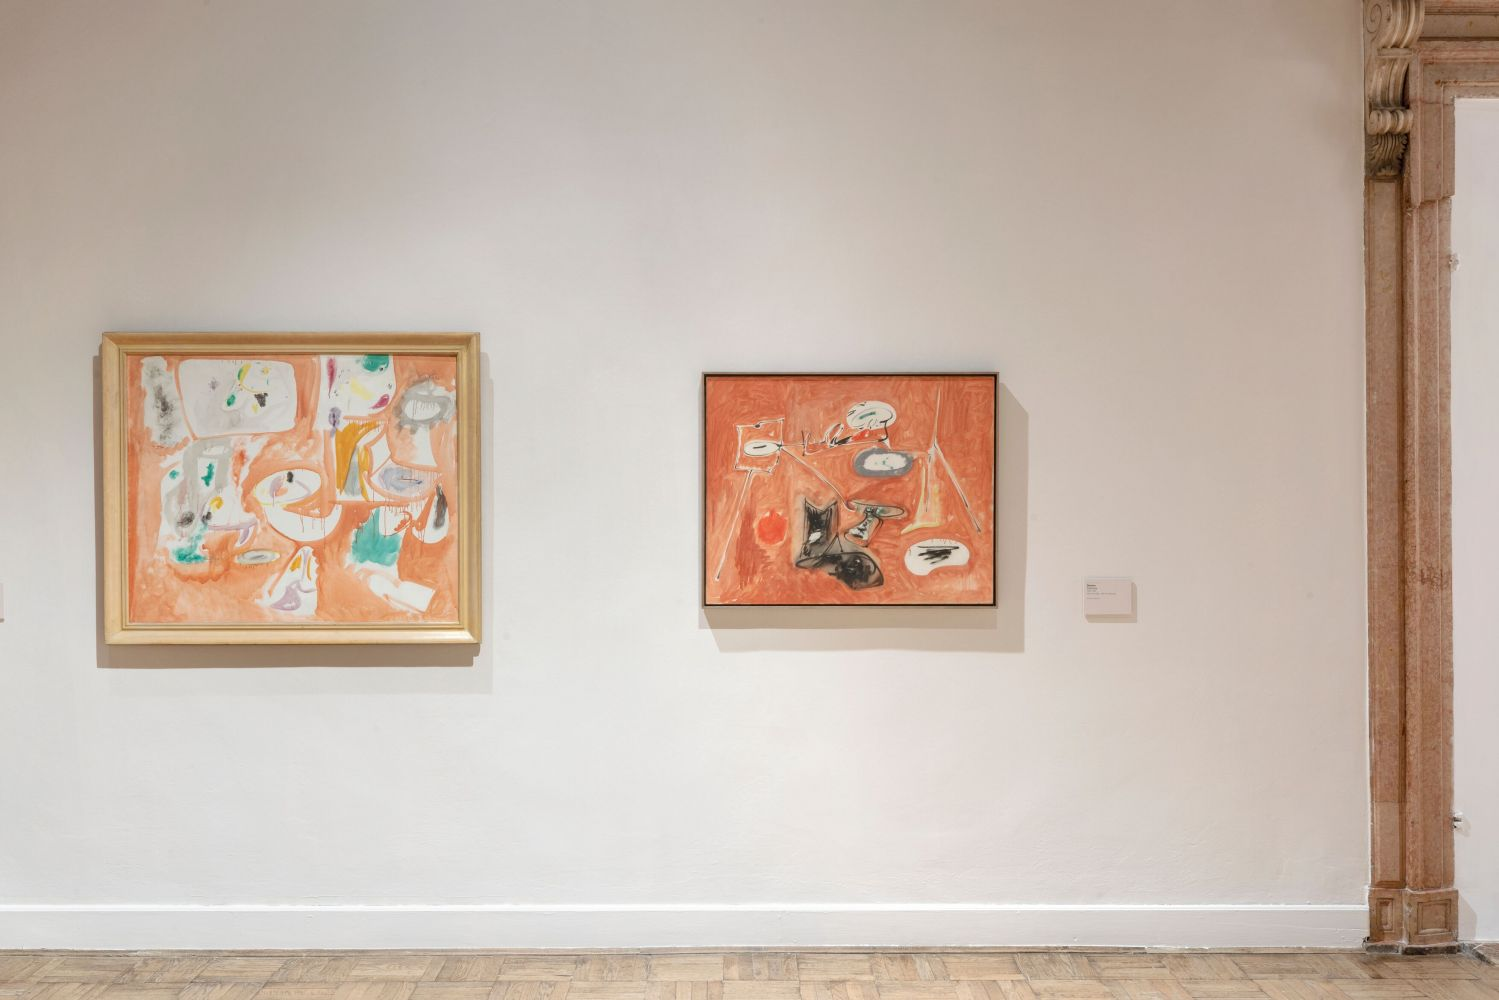 Installation photograph showing two works by Gorky: Anti-Medusa and Untitled (Last Painting)